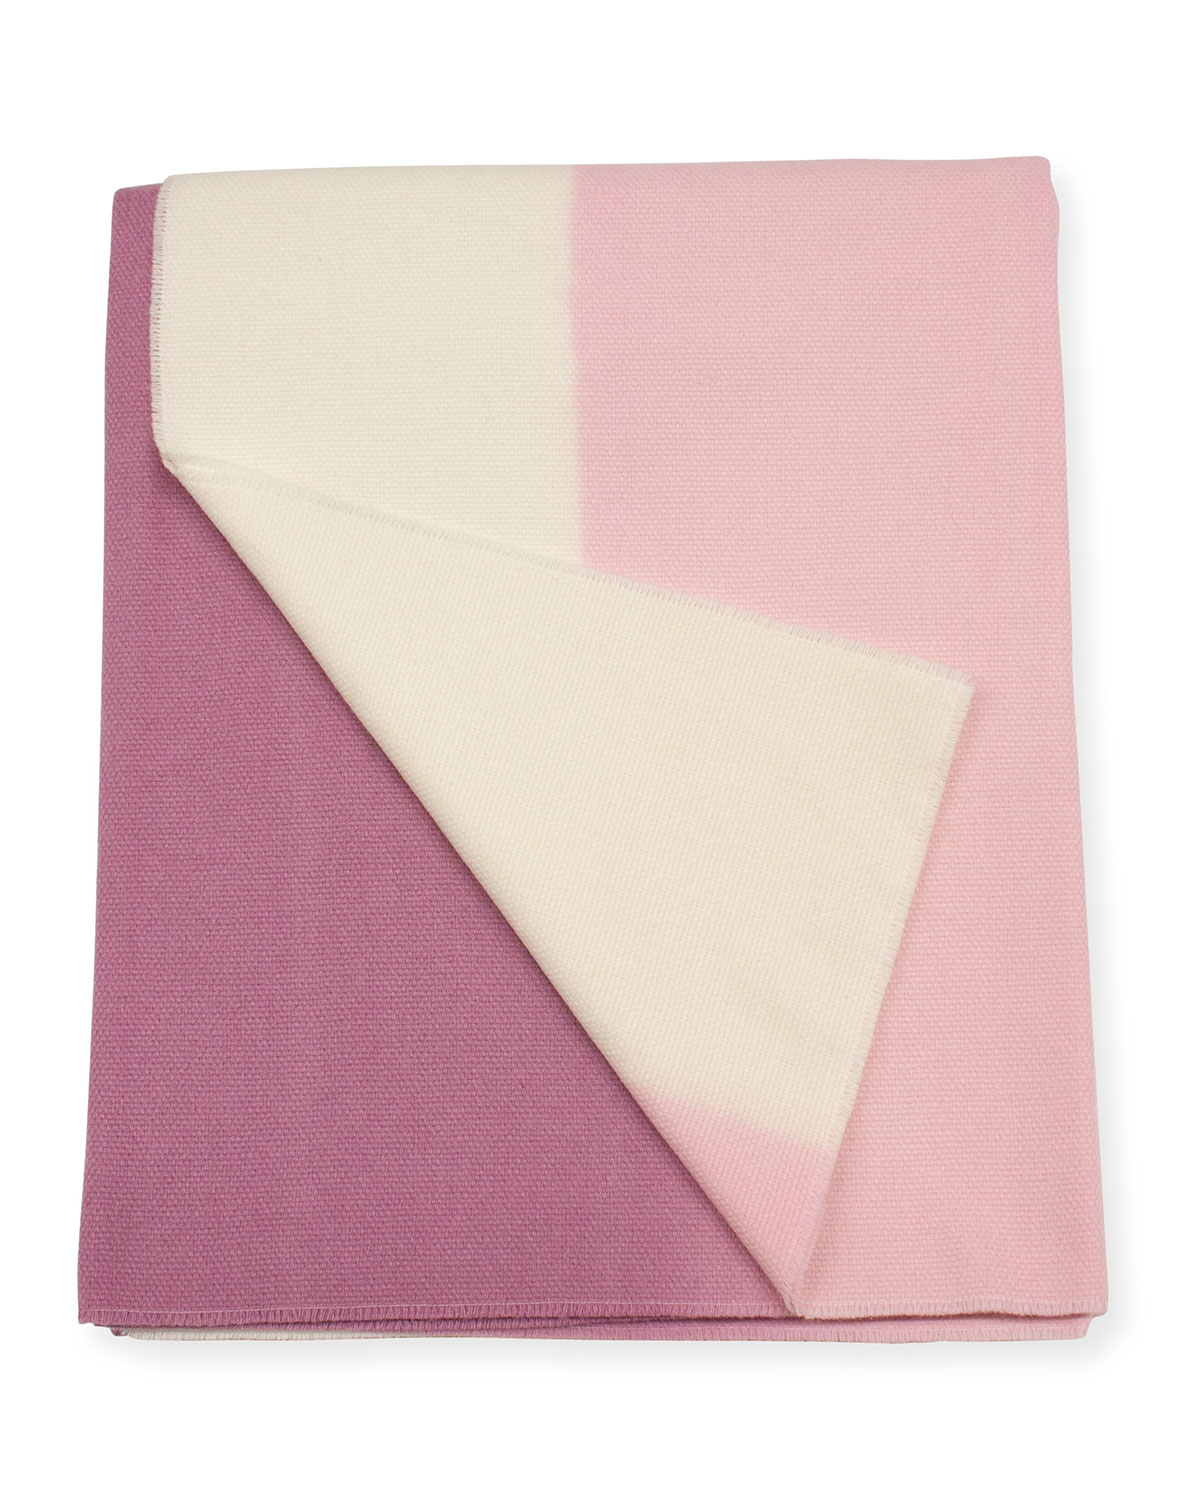 Enzo Degli Angiuoni Zelda Shaded Throw, Pink